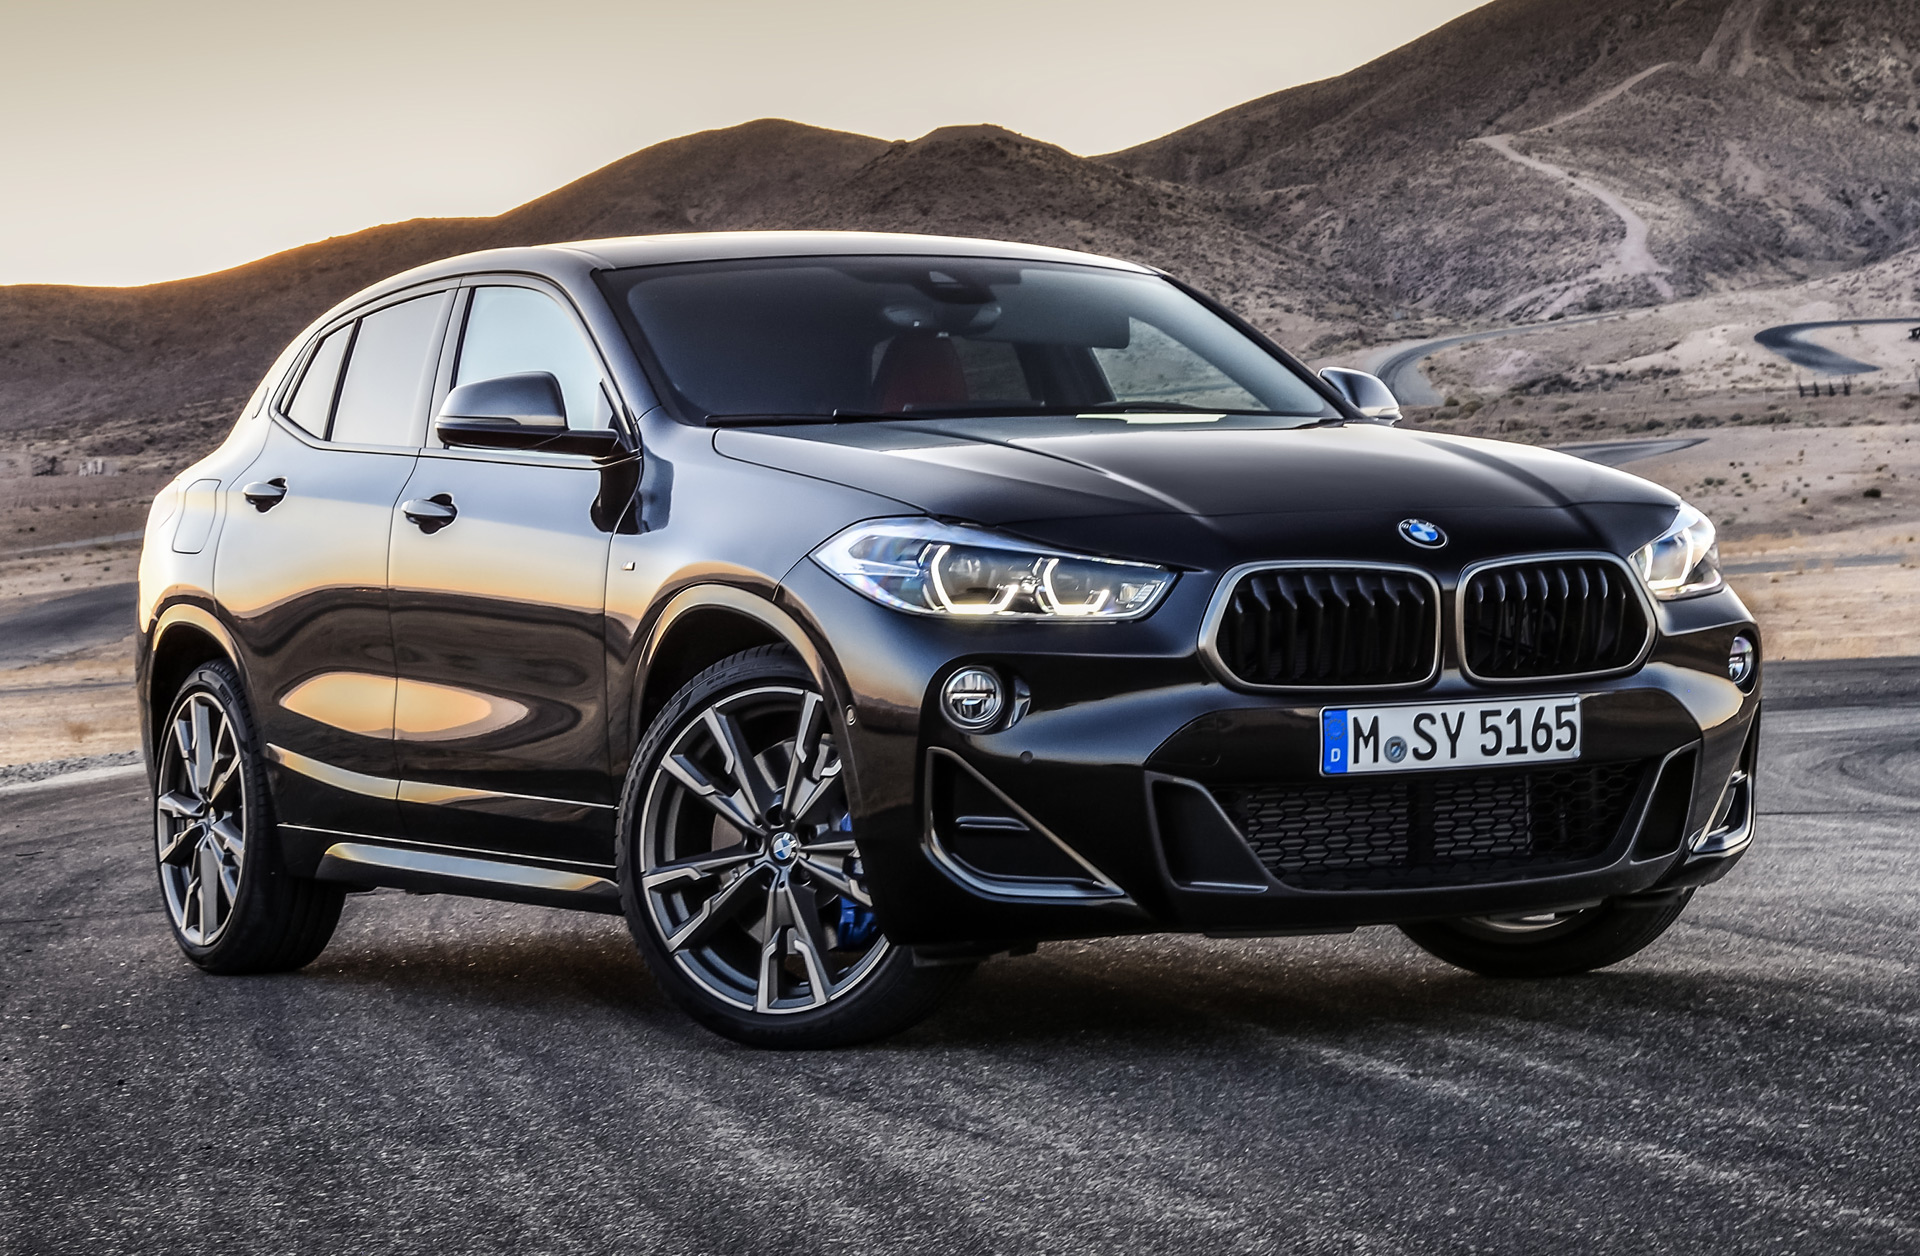 2019 Bmw X2 M35i Is A 302 Horsepower Hot Hatch Alternative